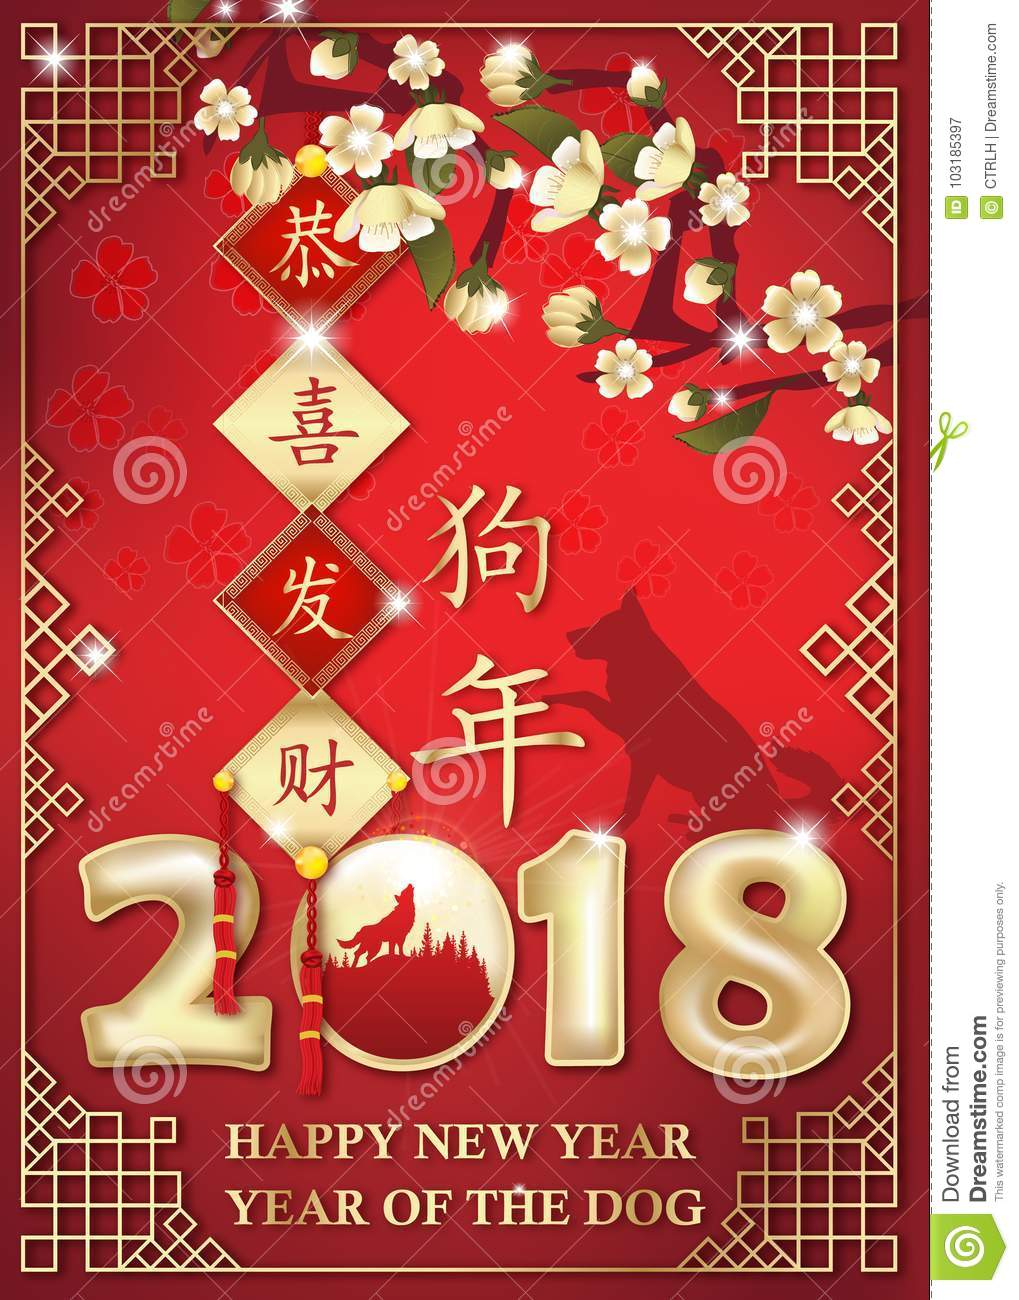 happy chinese new year of the earth dog 2018 corporate greeting card for international